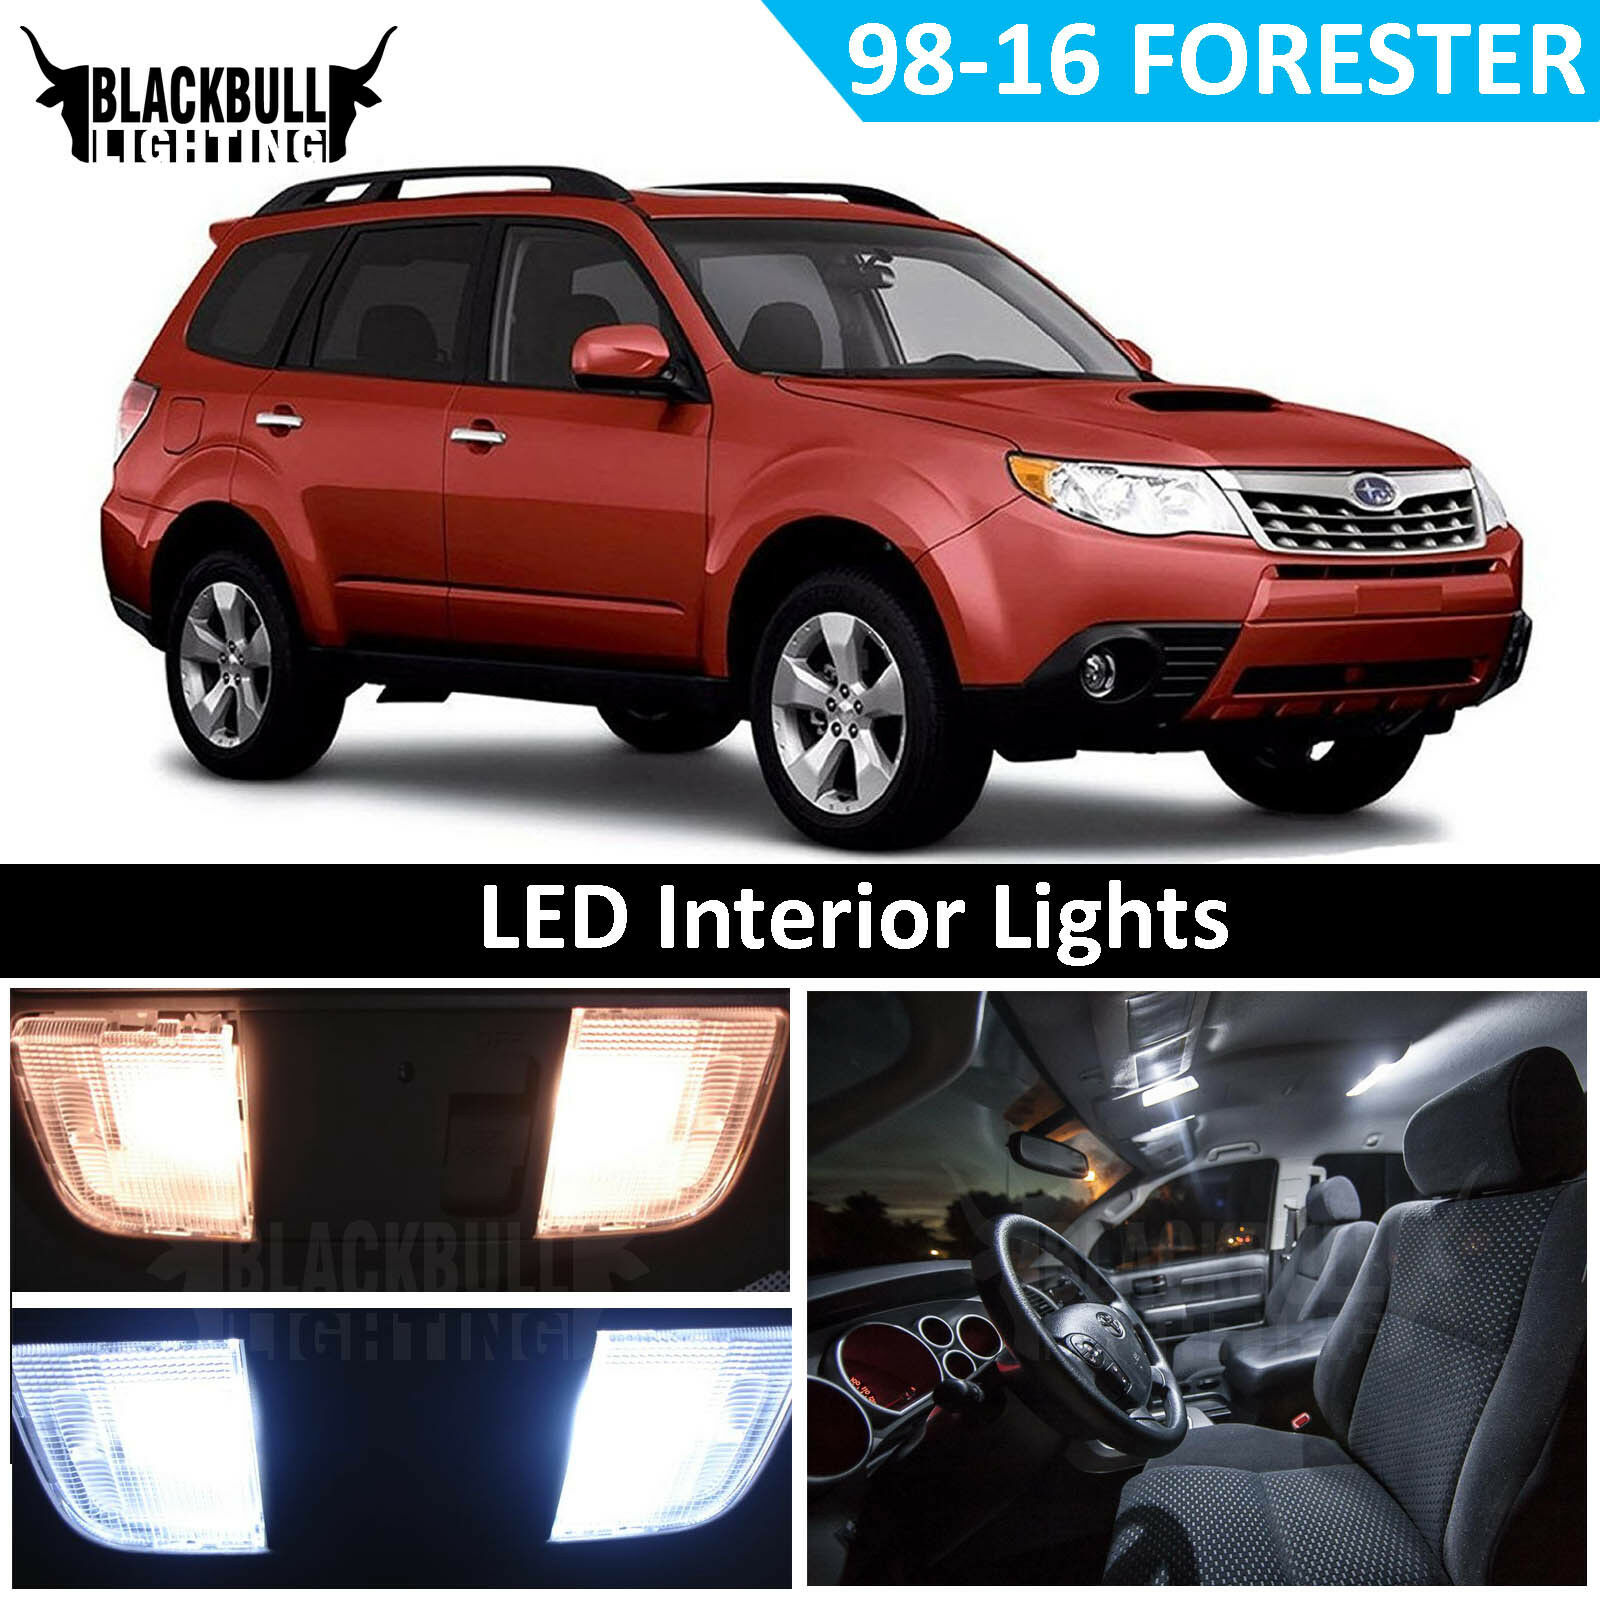 Details About White Led Interior Light Replacement Kit For 1998 2016 Subaru Forester 7 Bulbs